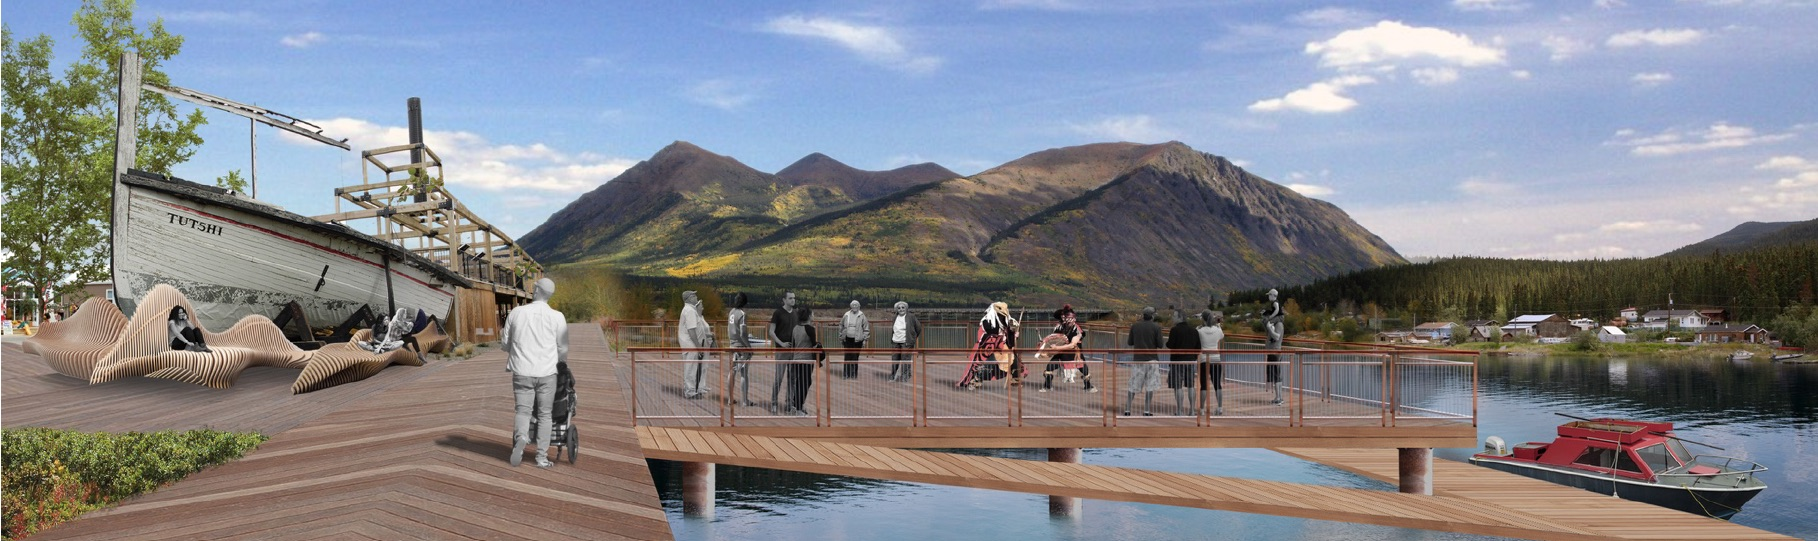 CARCROSS MARINA DESIGN + FEASIBILITY - Yukon government hired 3Pikas to explore the possible infrastructure and development potential of building a marina on Natasaheeni River in Carcross.